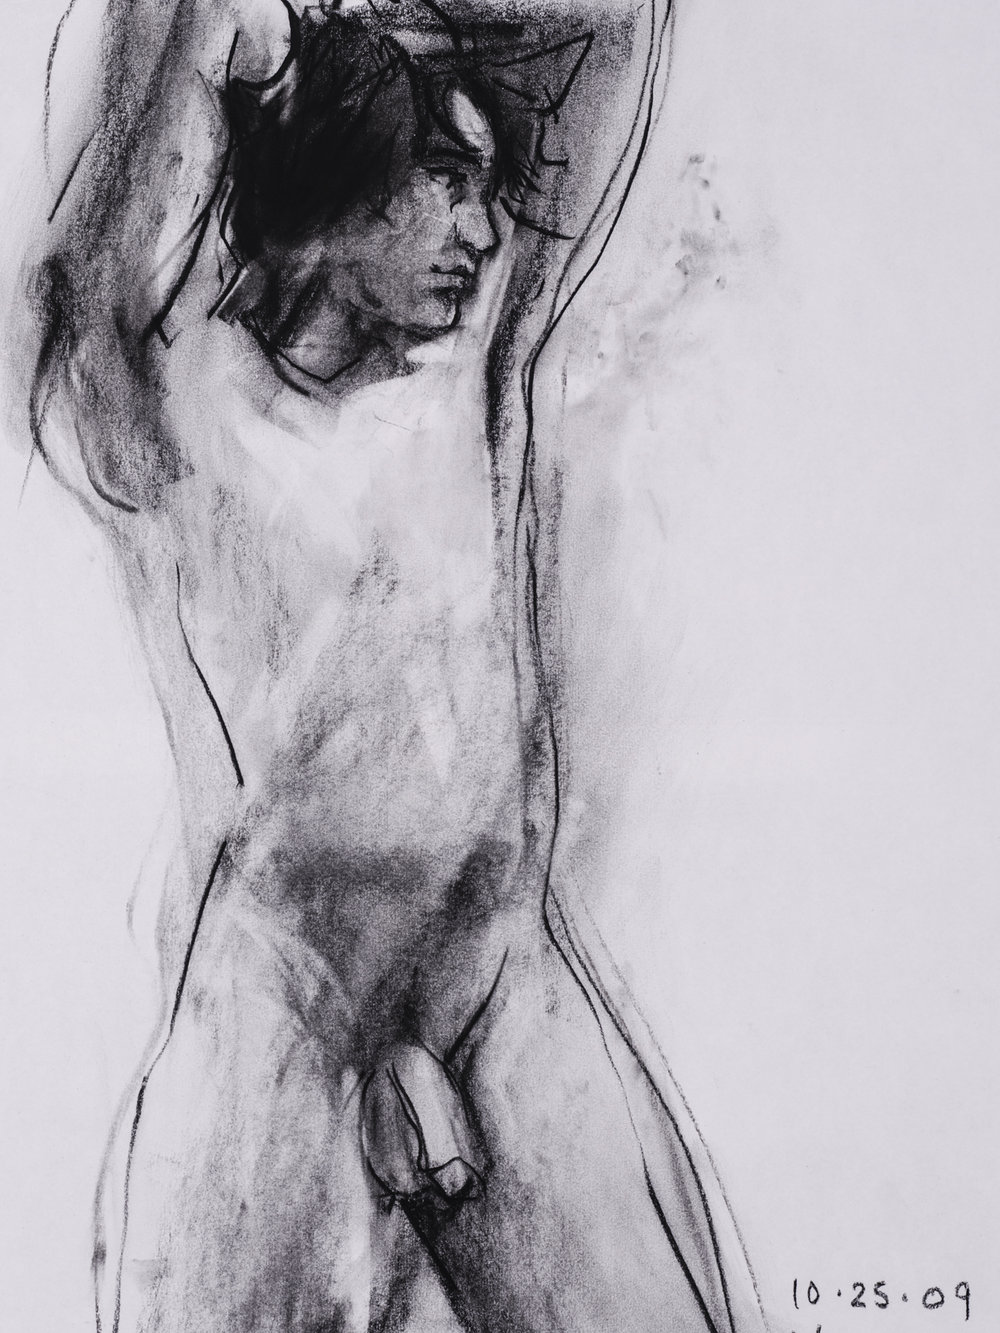 FigureDrawing-wHEYDT-20.jpg